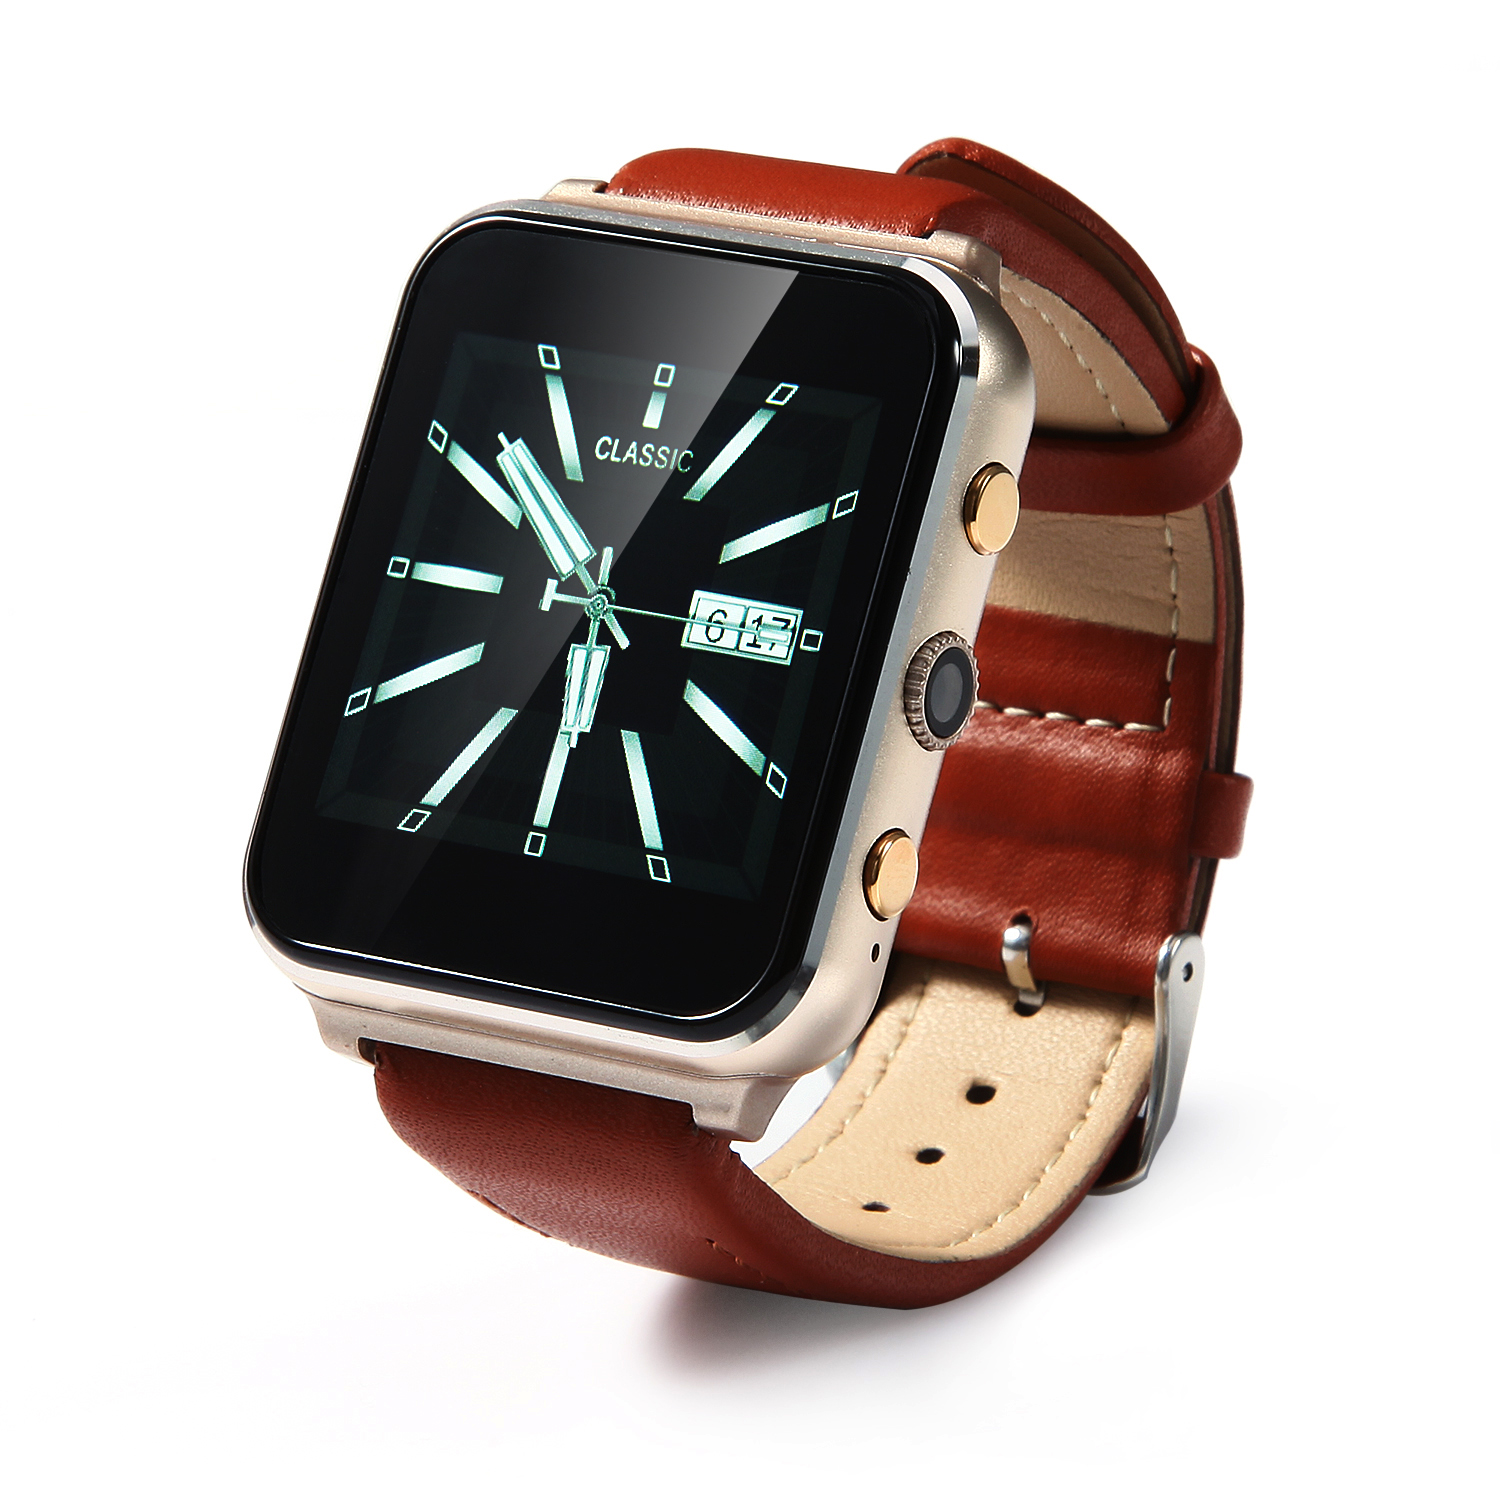 iLepo 400 Watch Phone Smart Bluetooth Watch MTK6261A 1.54 Inch for Android iOS Gold